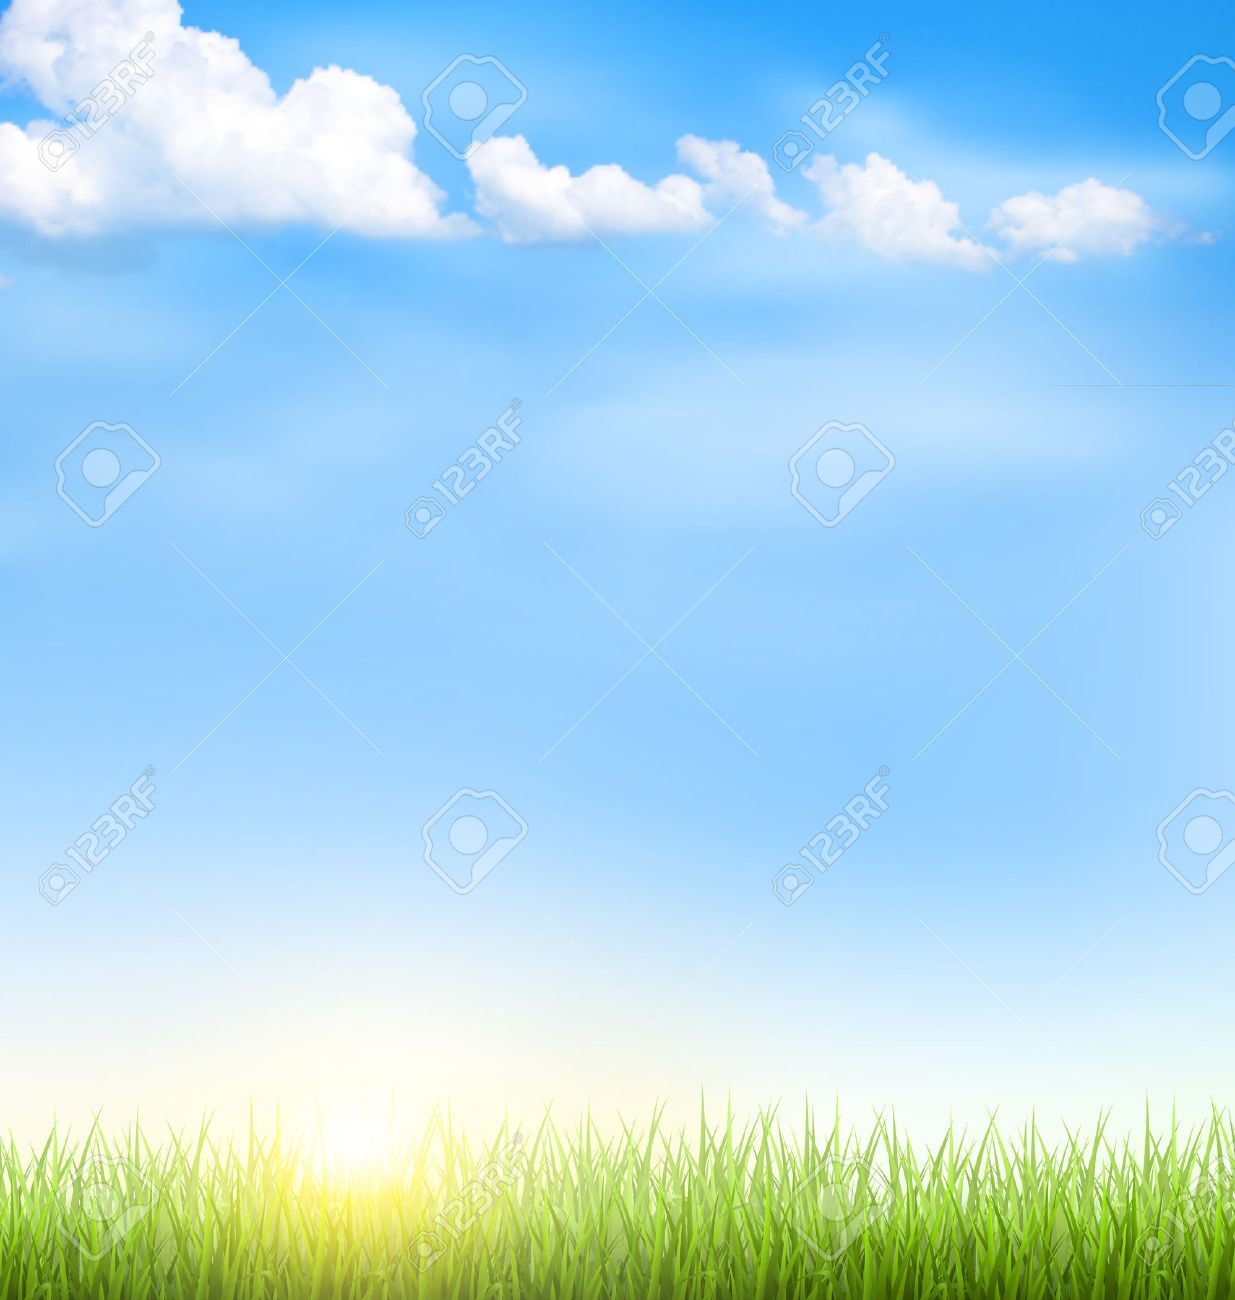 Green grass lawn with clouds and sun on blue sky - 41732313